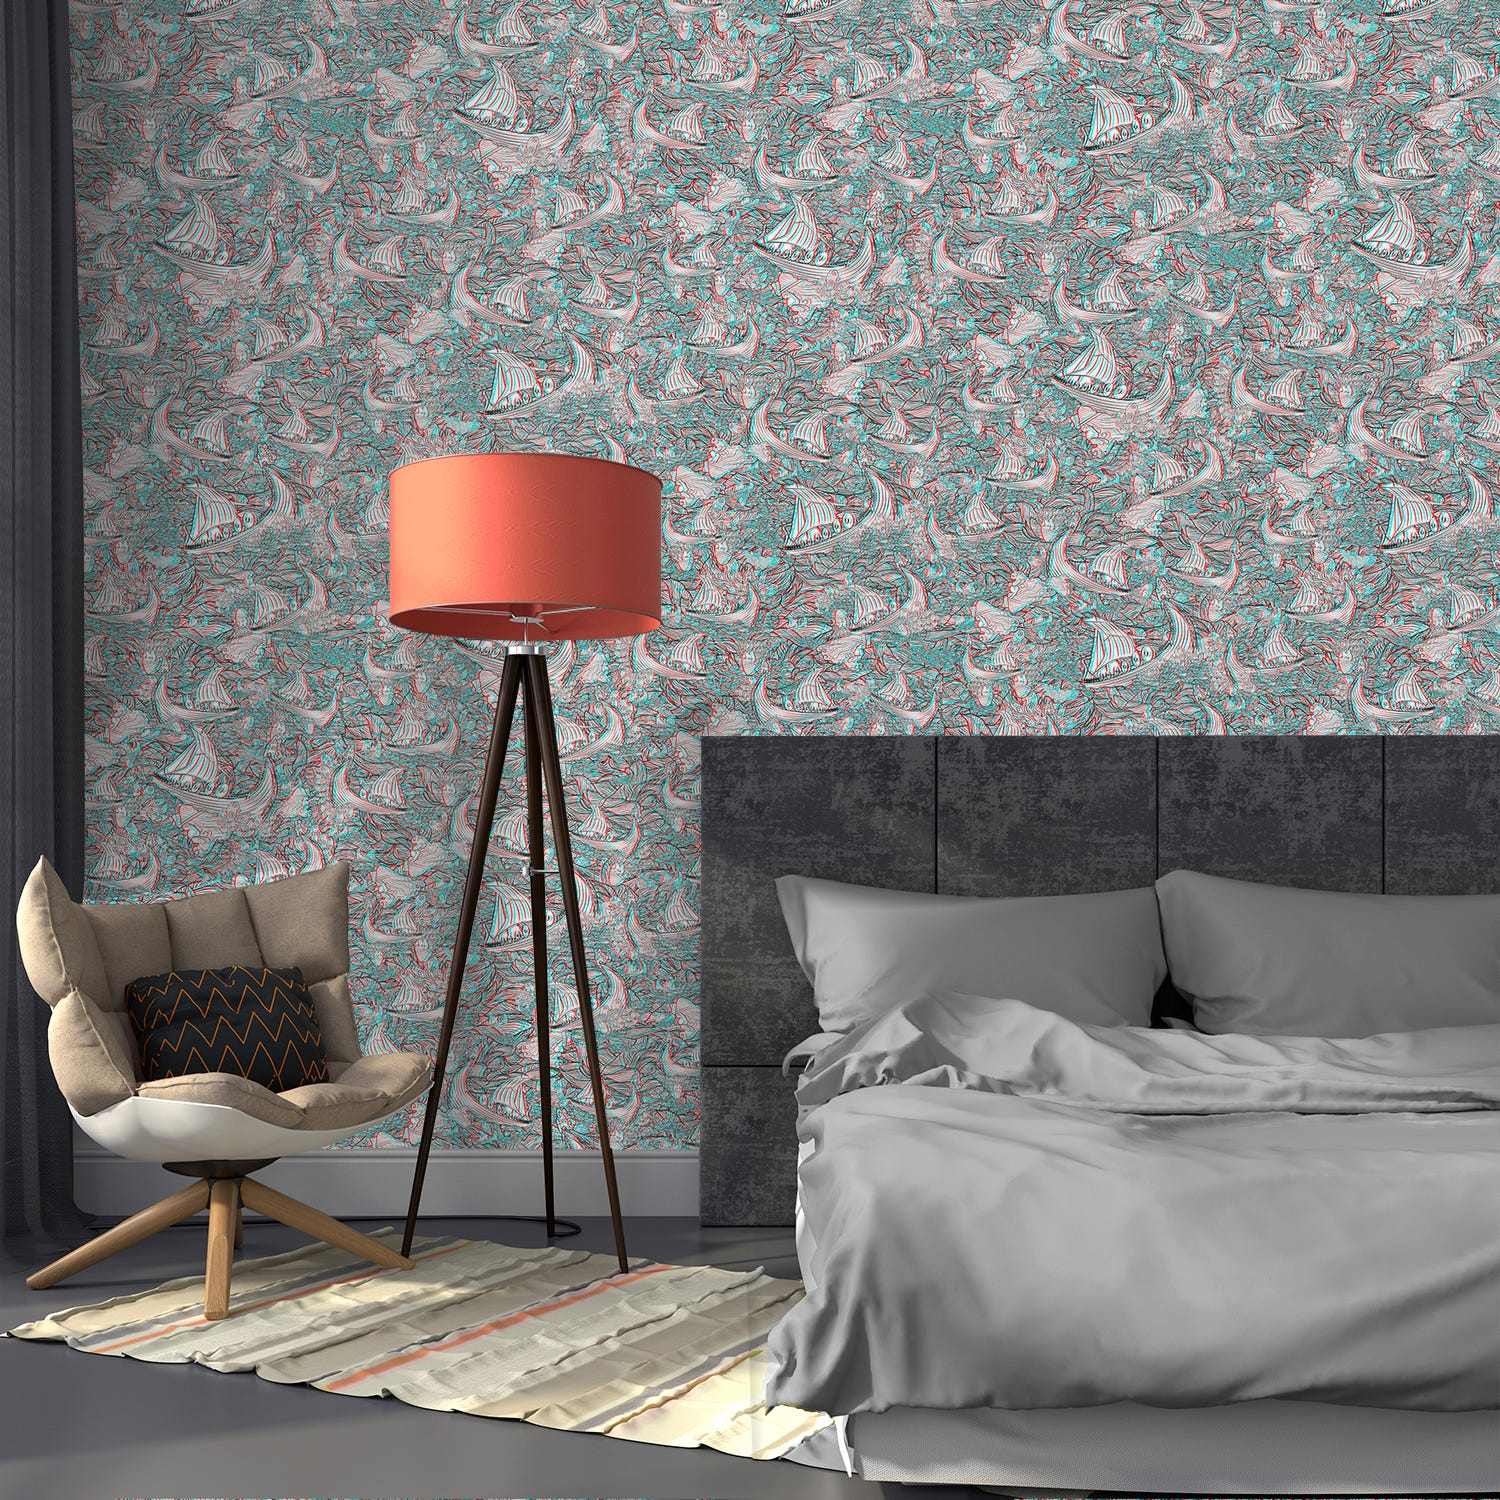 You ll Either Love Or Hate This Super Trippy Wallpaper. 3D Wallpaper   Home Decor Trends